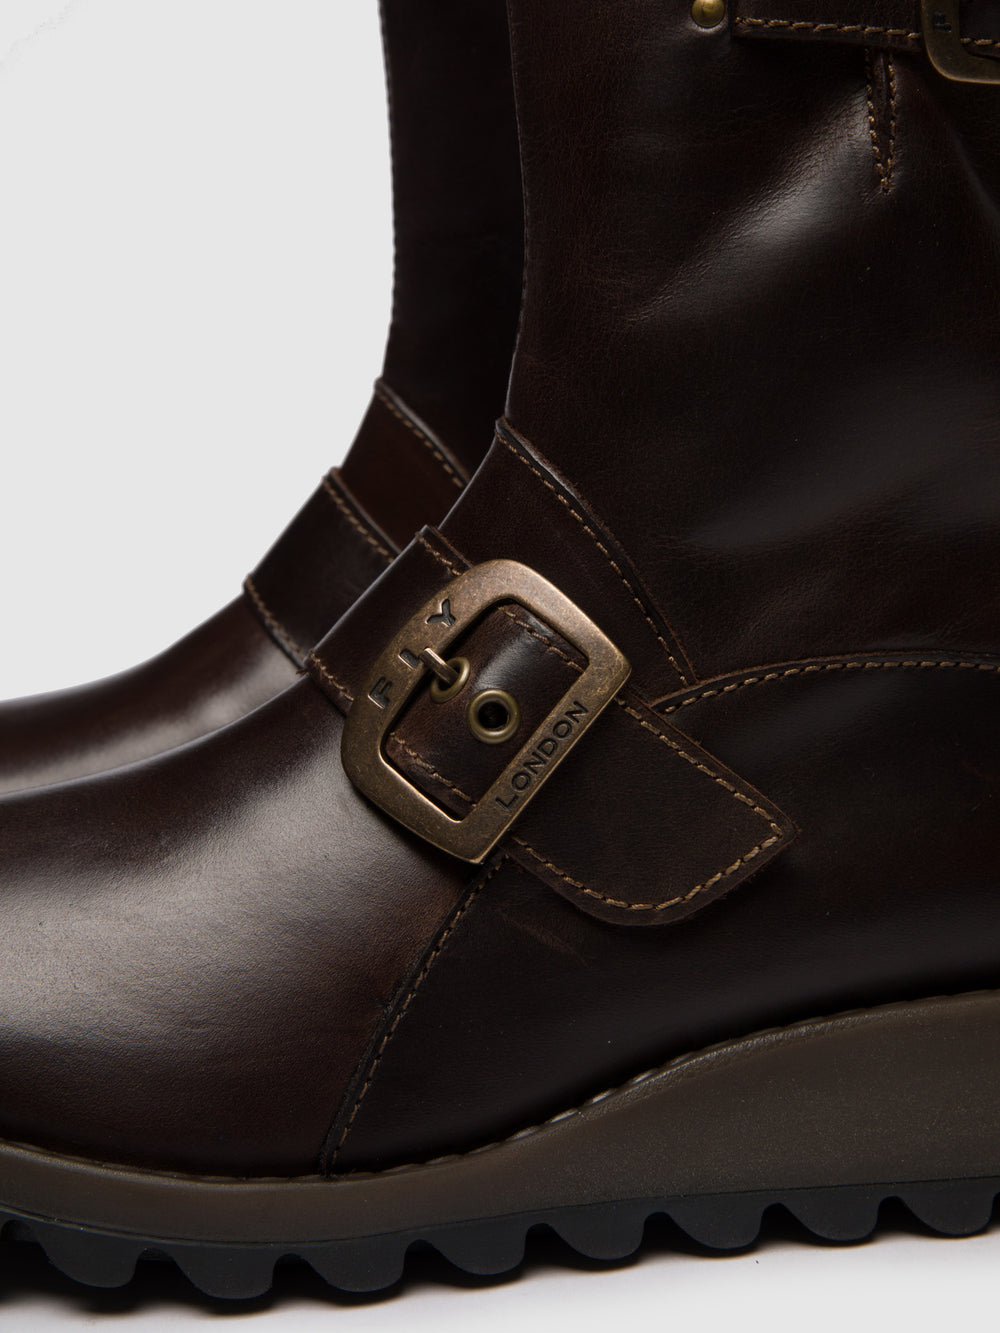 Buckle Ankle Boots SINO525FLY DK.BROWN